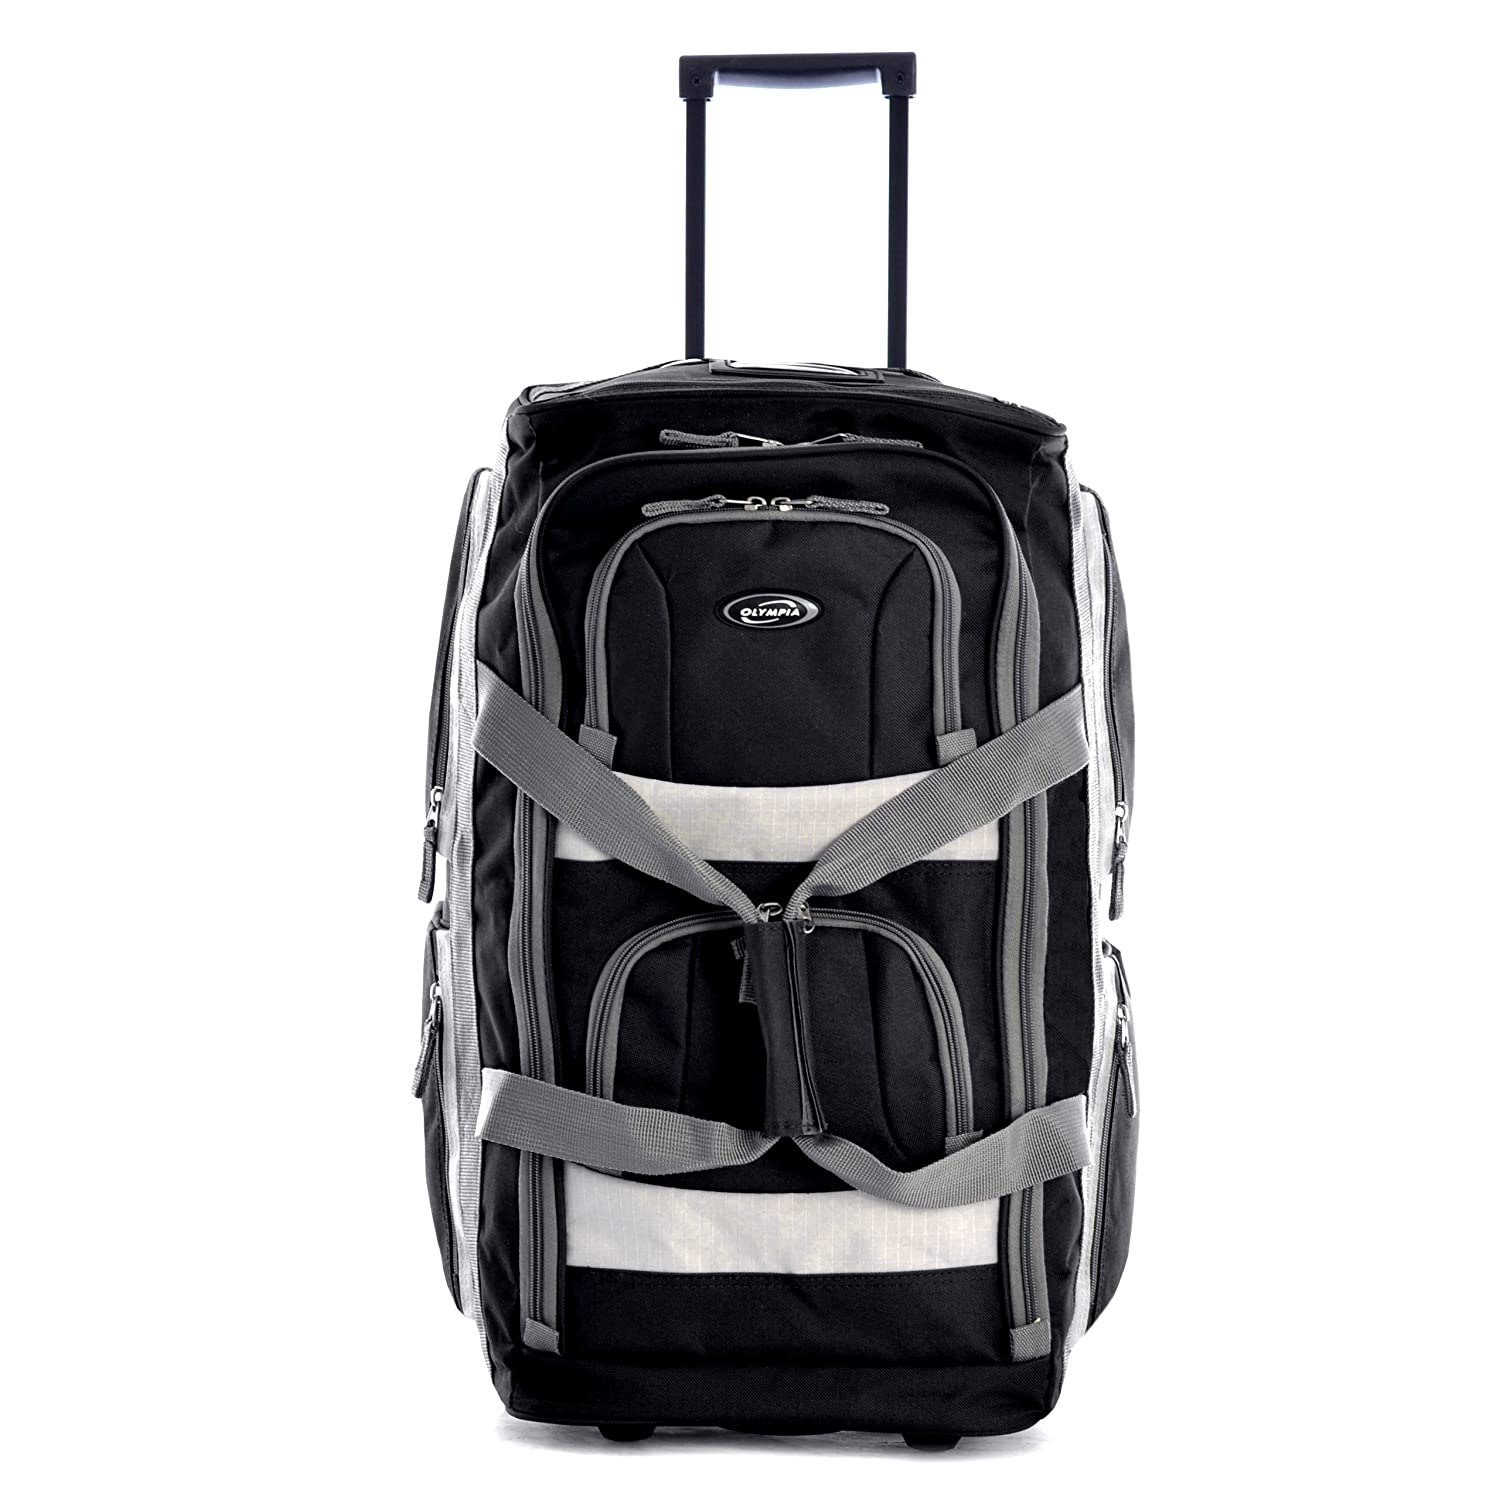 amazon com olympia luggage 22 8 pocket rolling duffel bag black